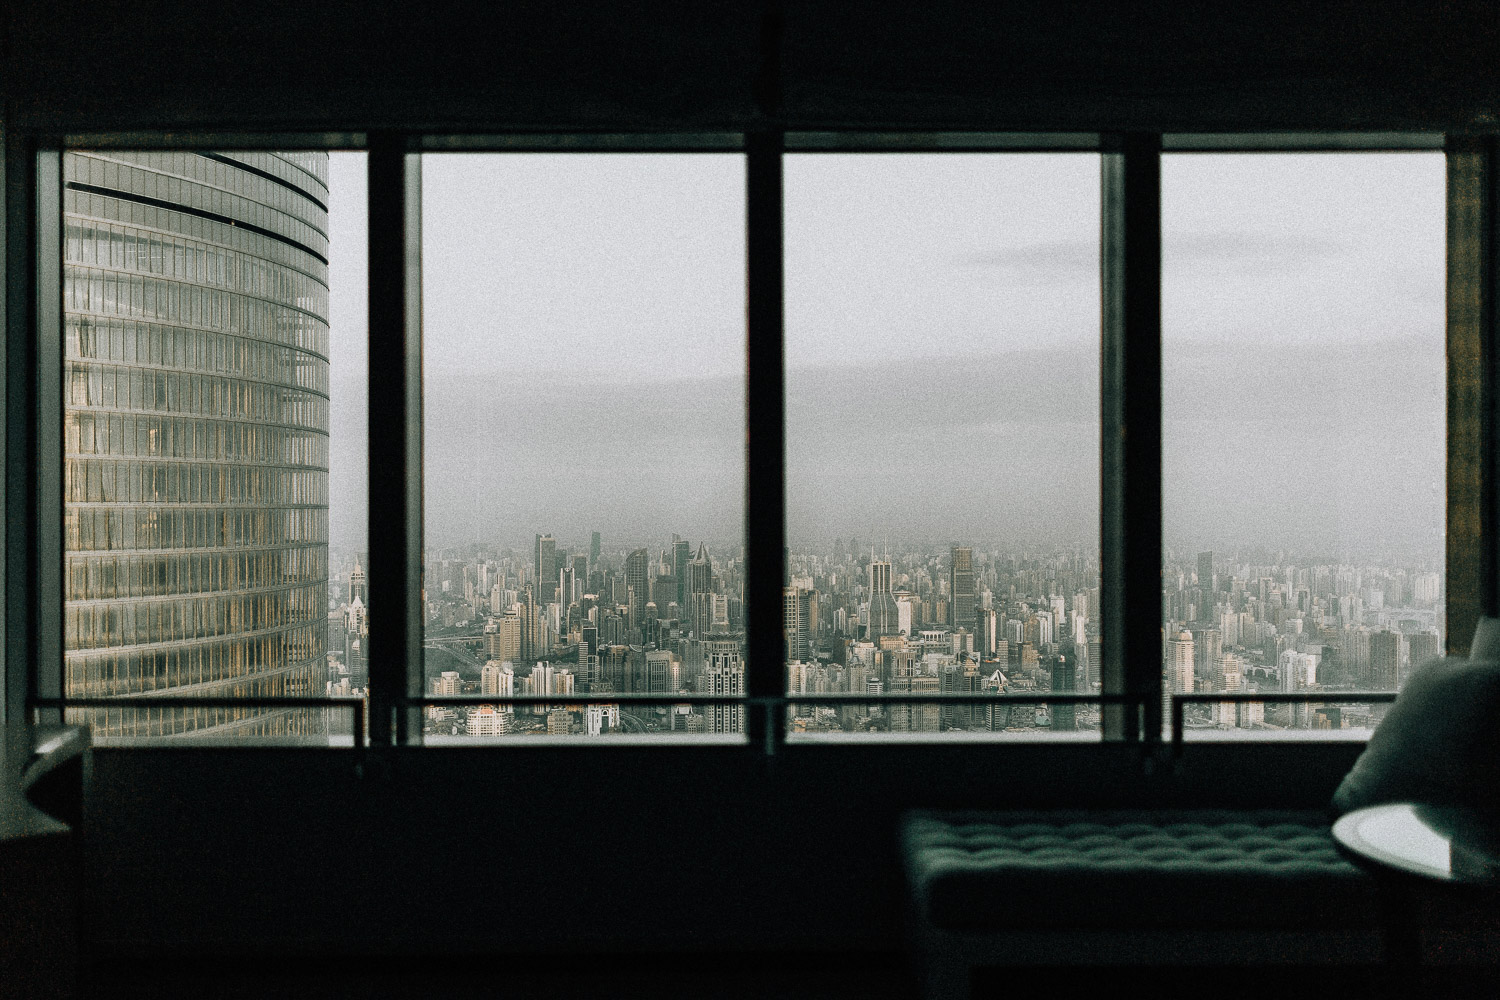 Image of city view of Shanghai